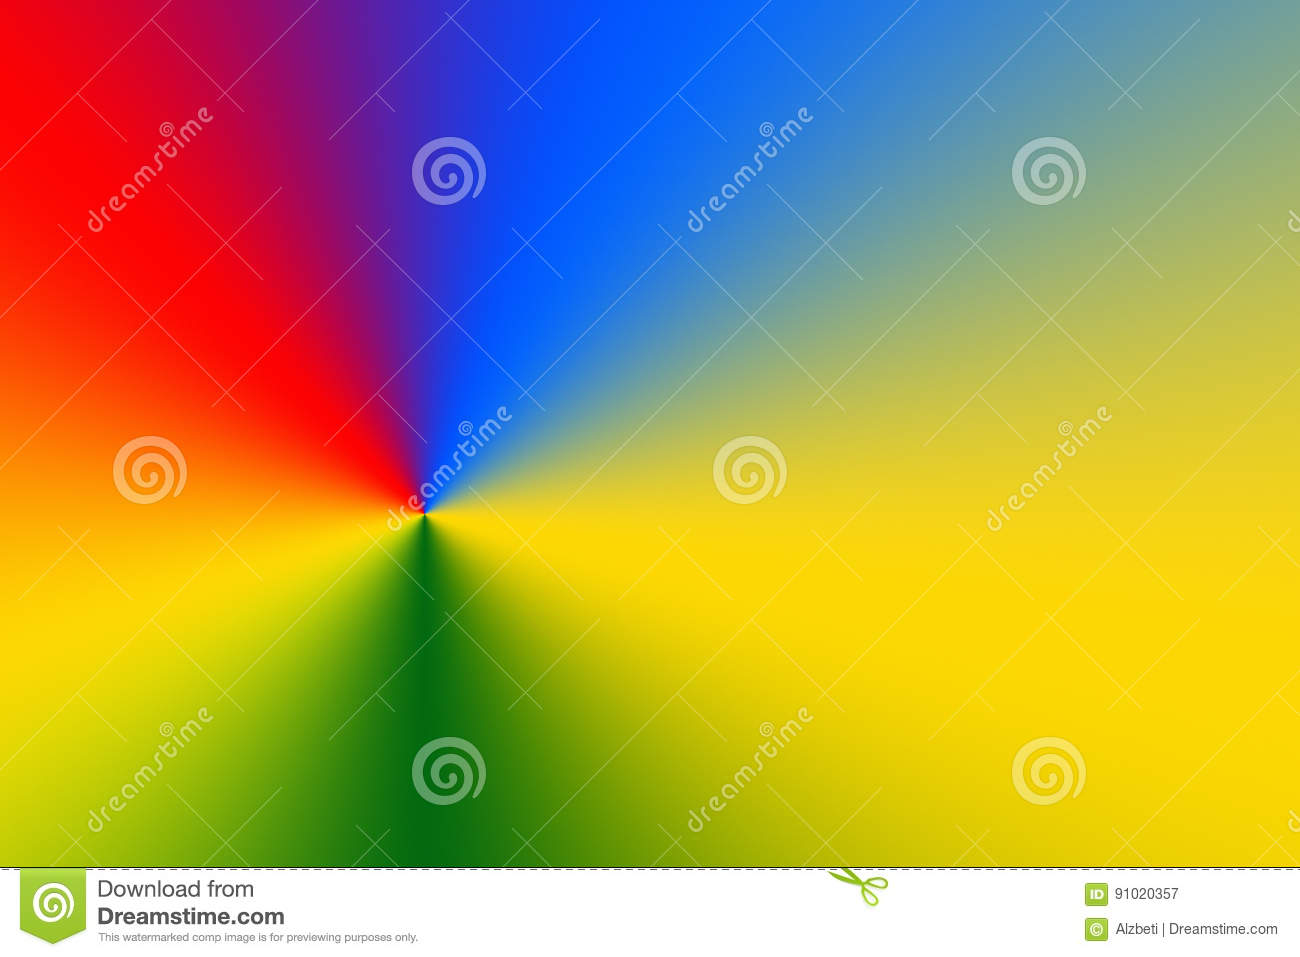 Creative Colorful Abstract Background With Light Lines Stock